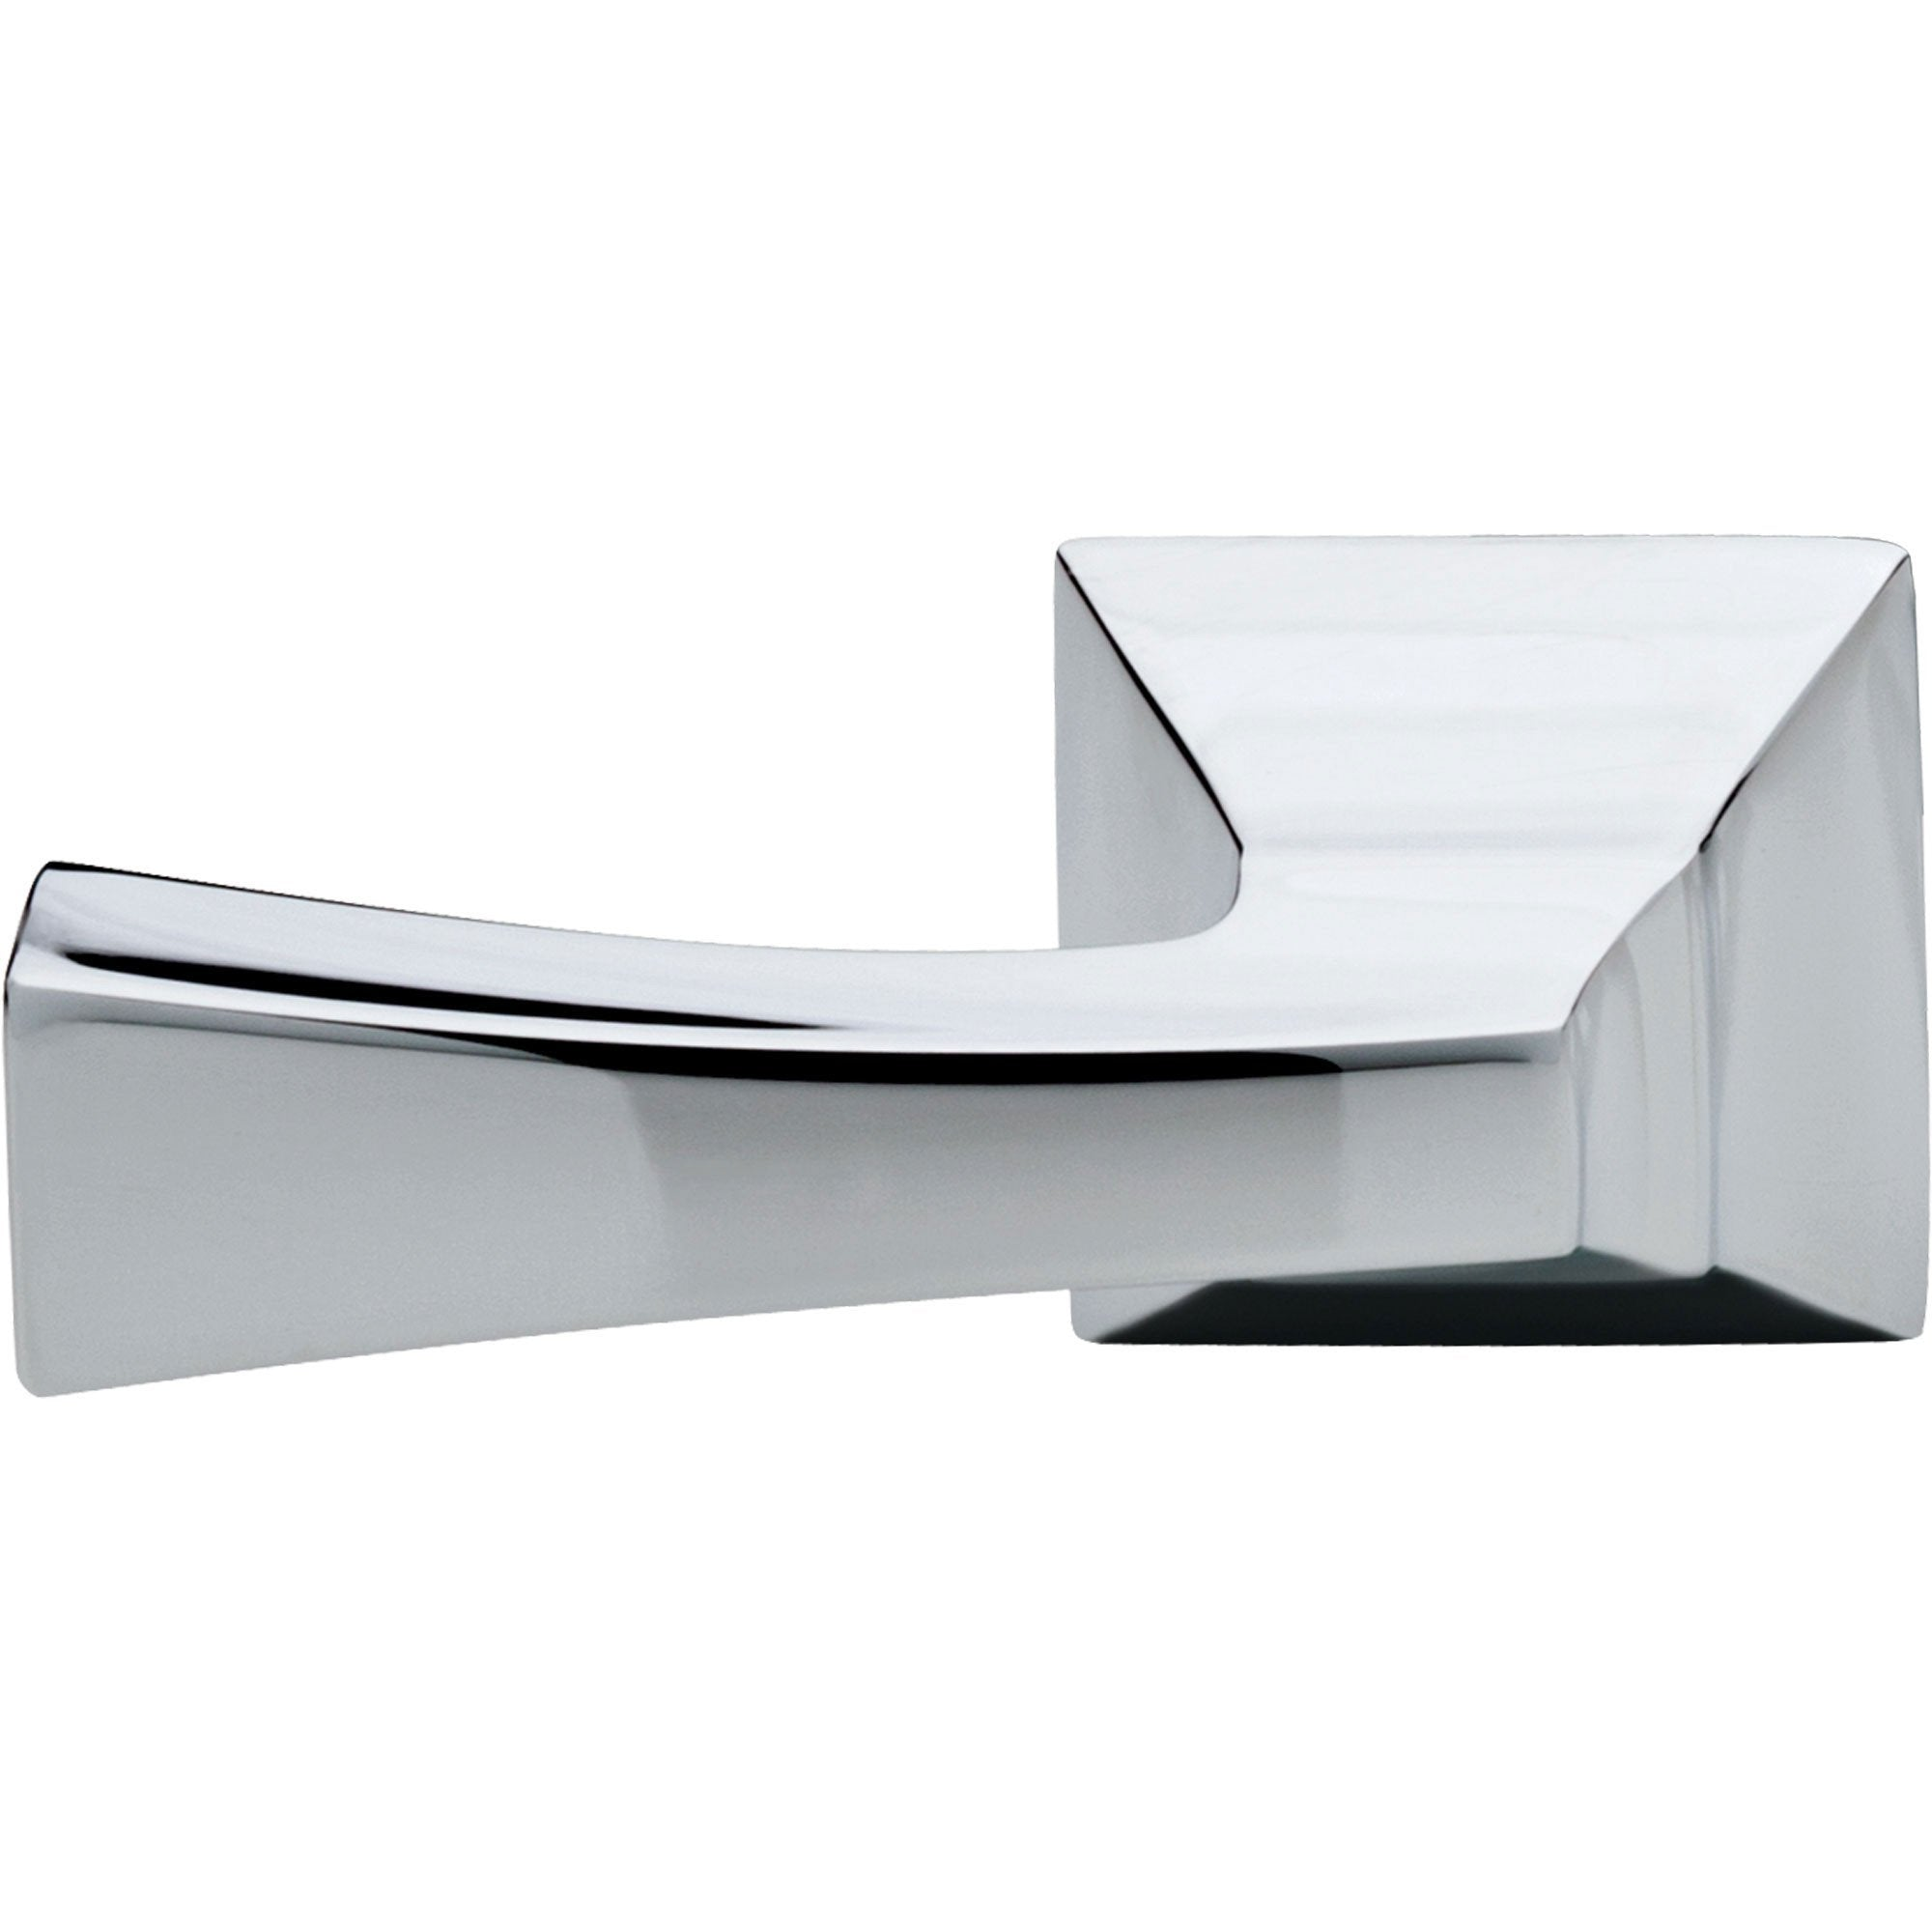 Delta Dryden Chrome Modern Universal Toilet Tank Flush Handle Lever 634591